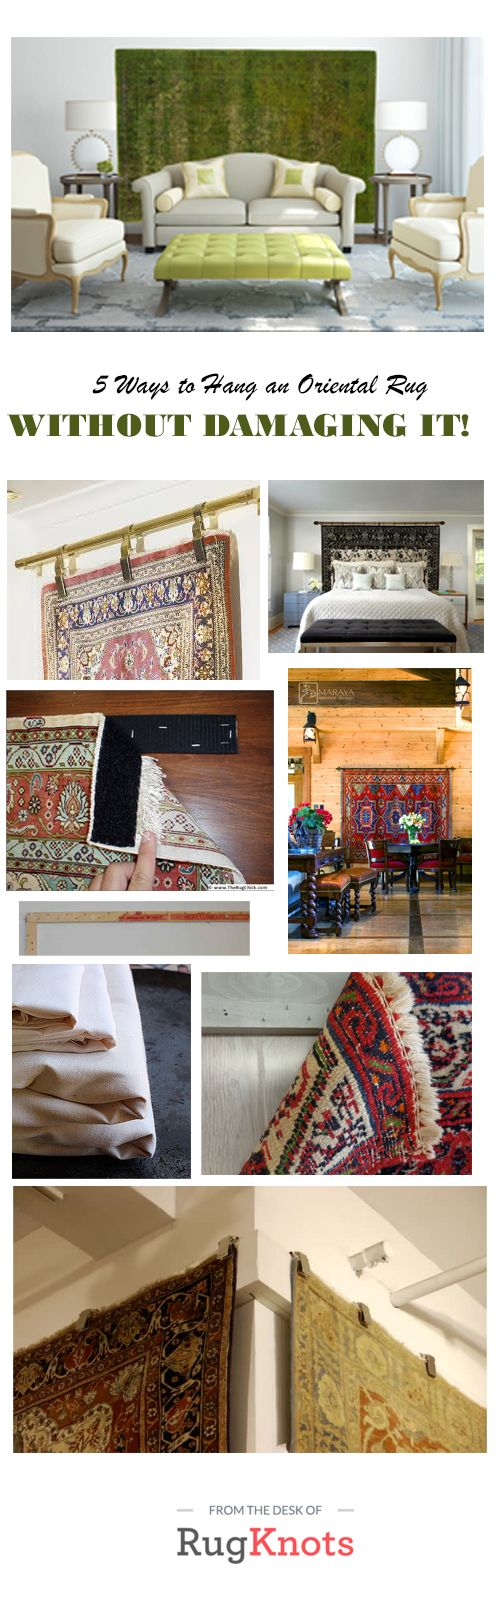 9x12 Area Rugs  Ways to Hang an Oriental Rug u Without Damaging it